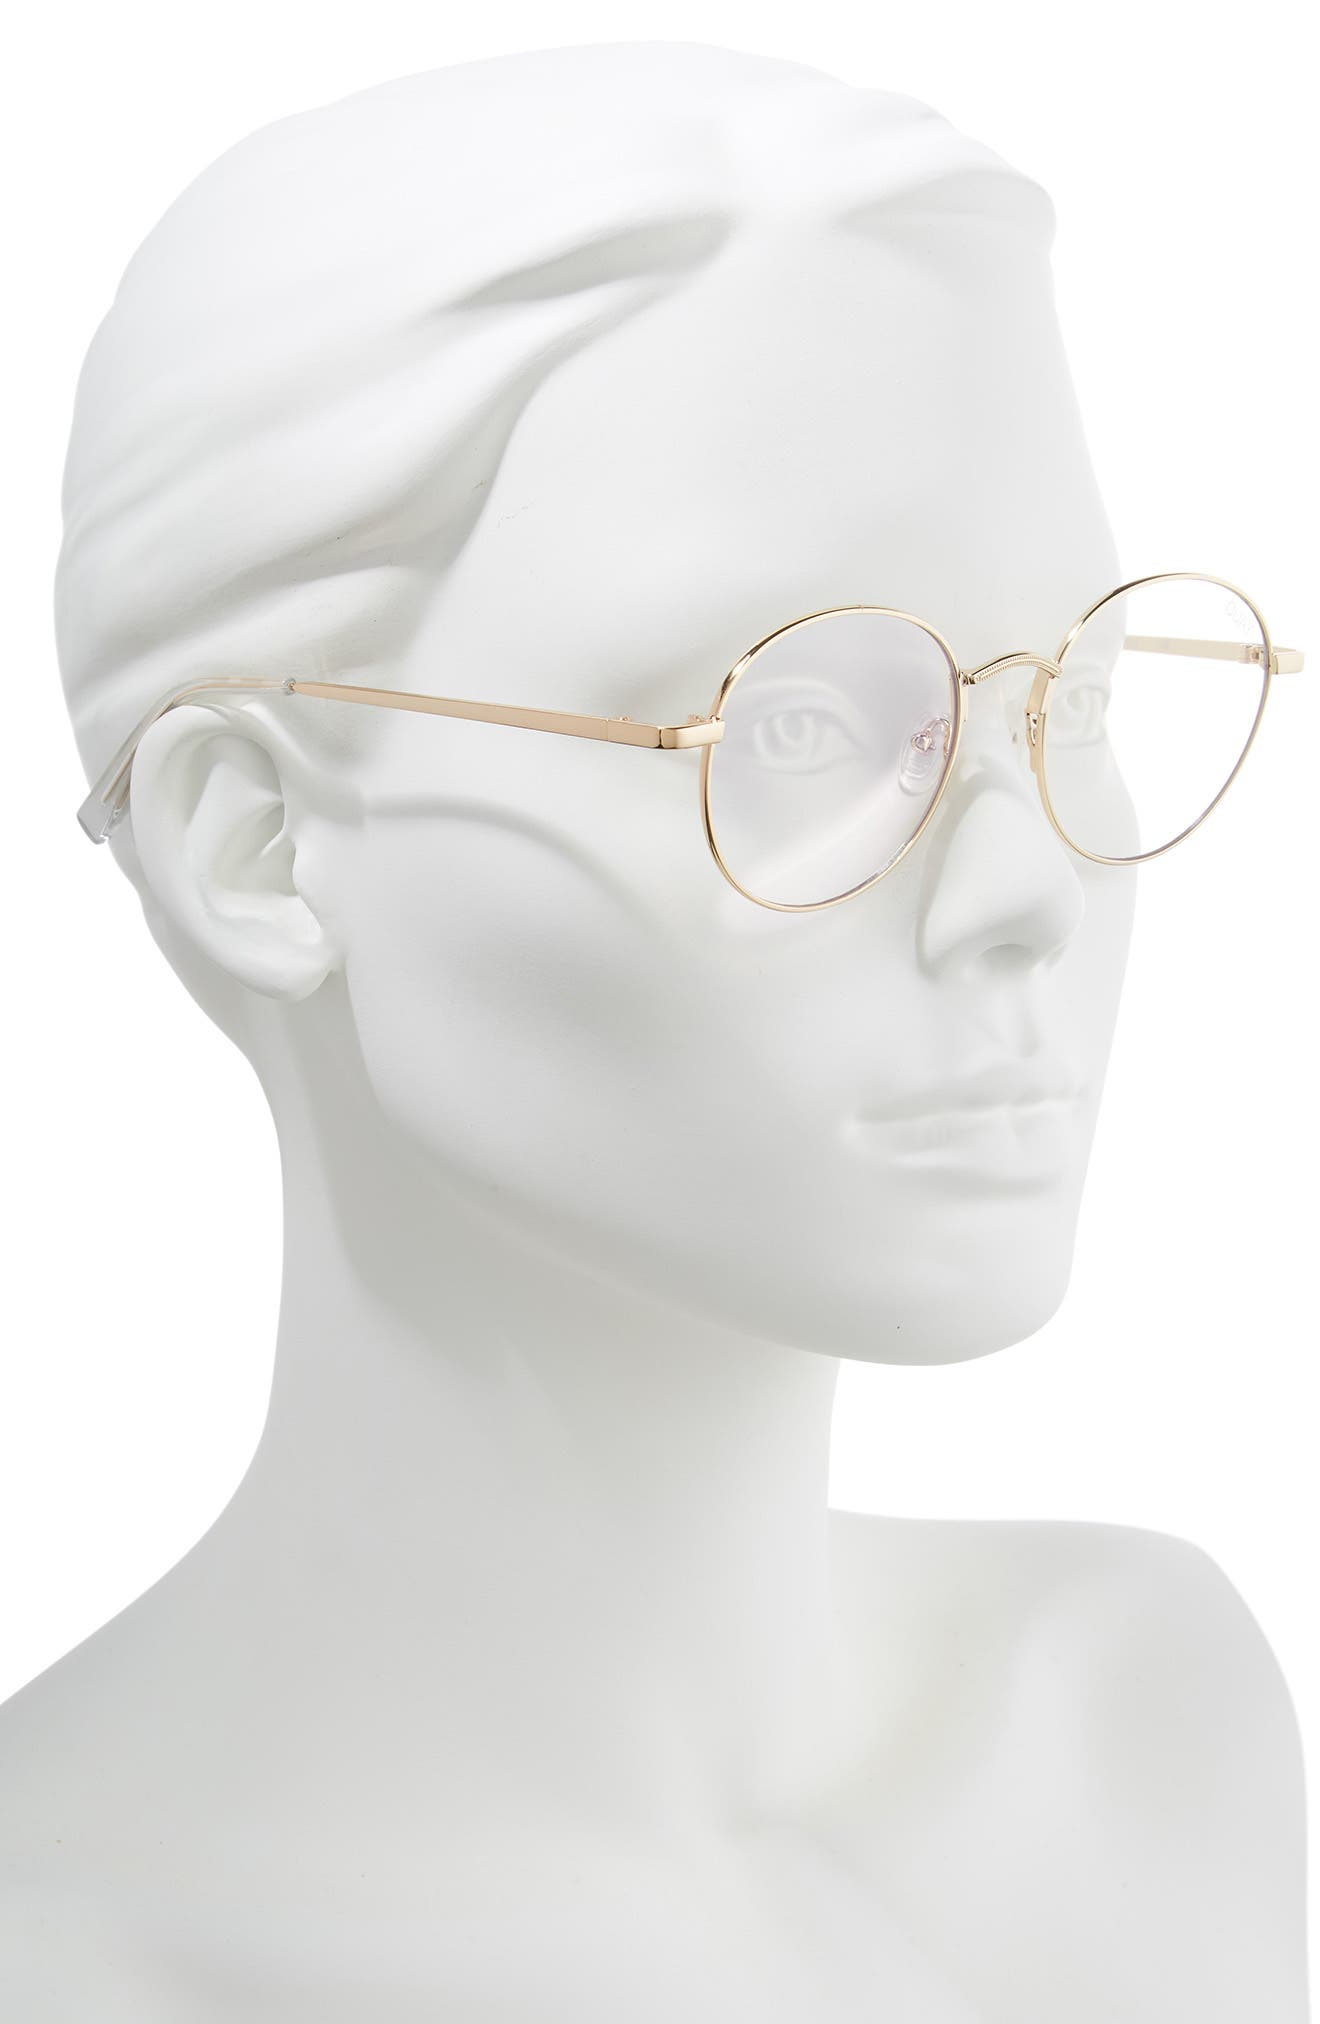 I See You 49mm Round Fashion Glasses,                             Alternate thumbnail 2, color,                             710